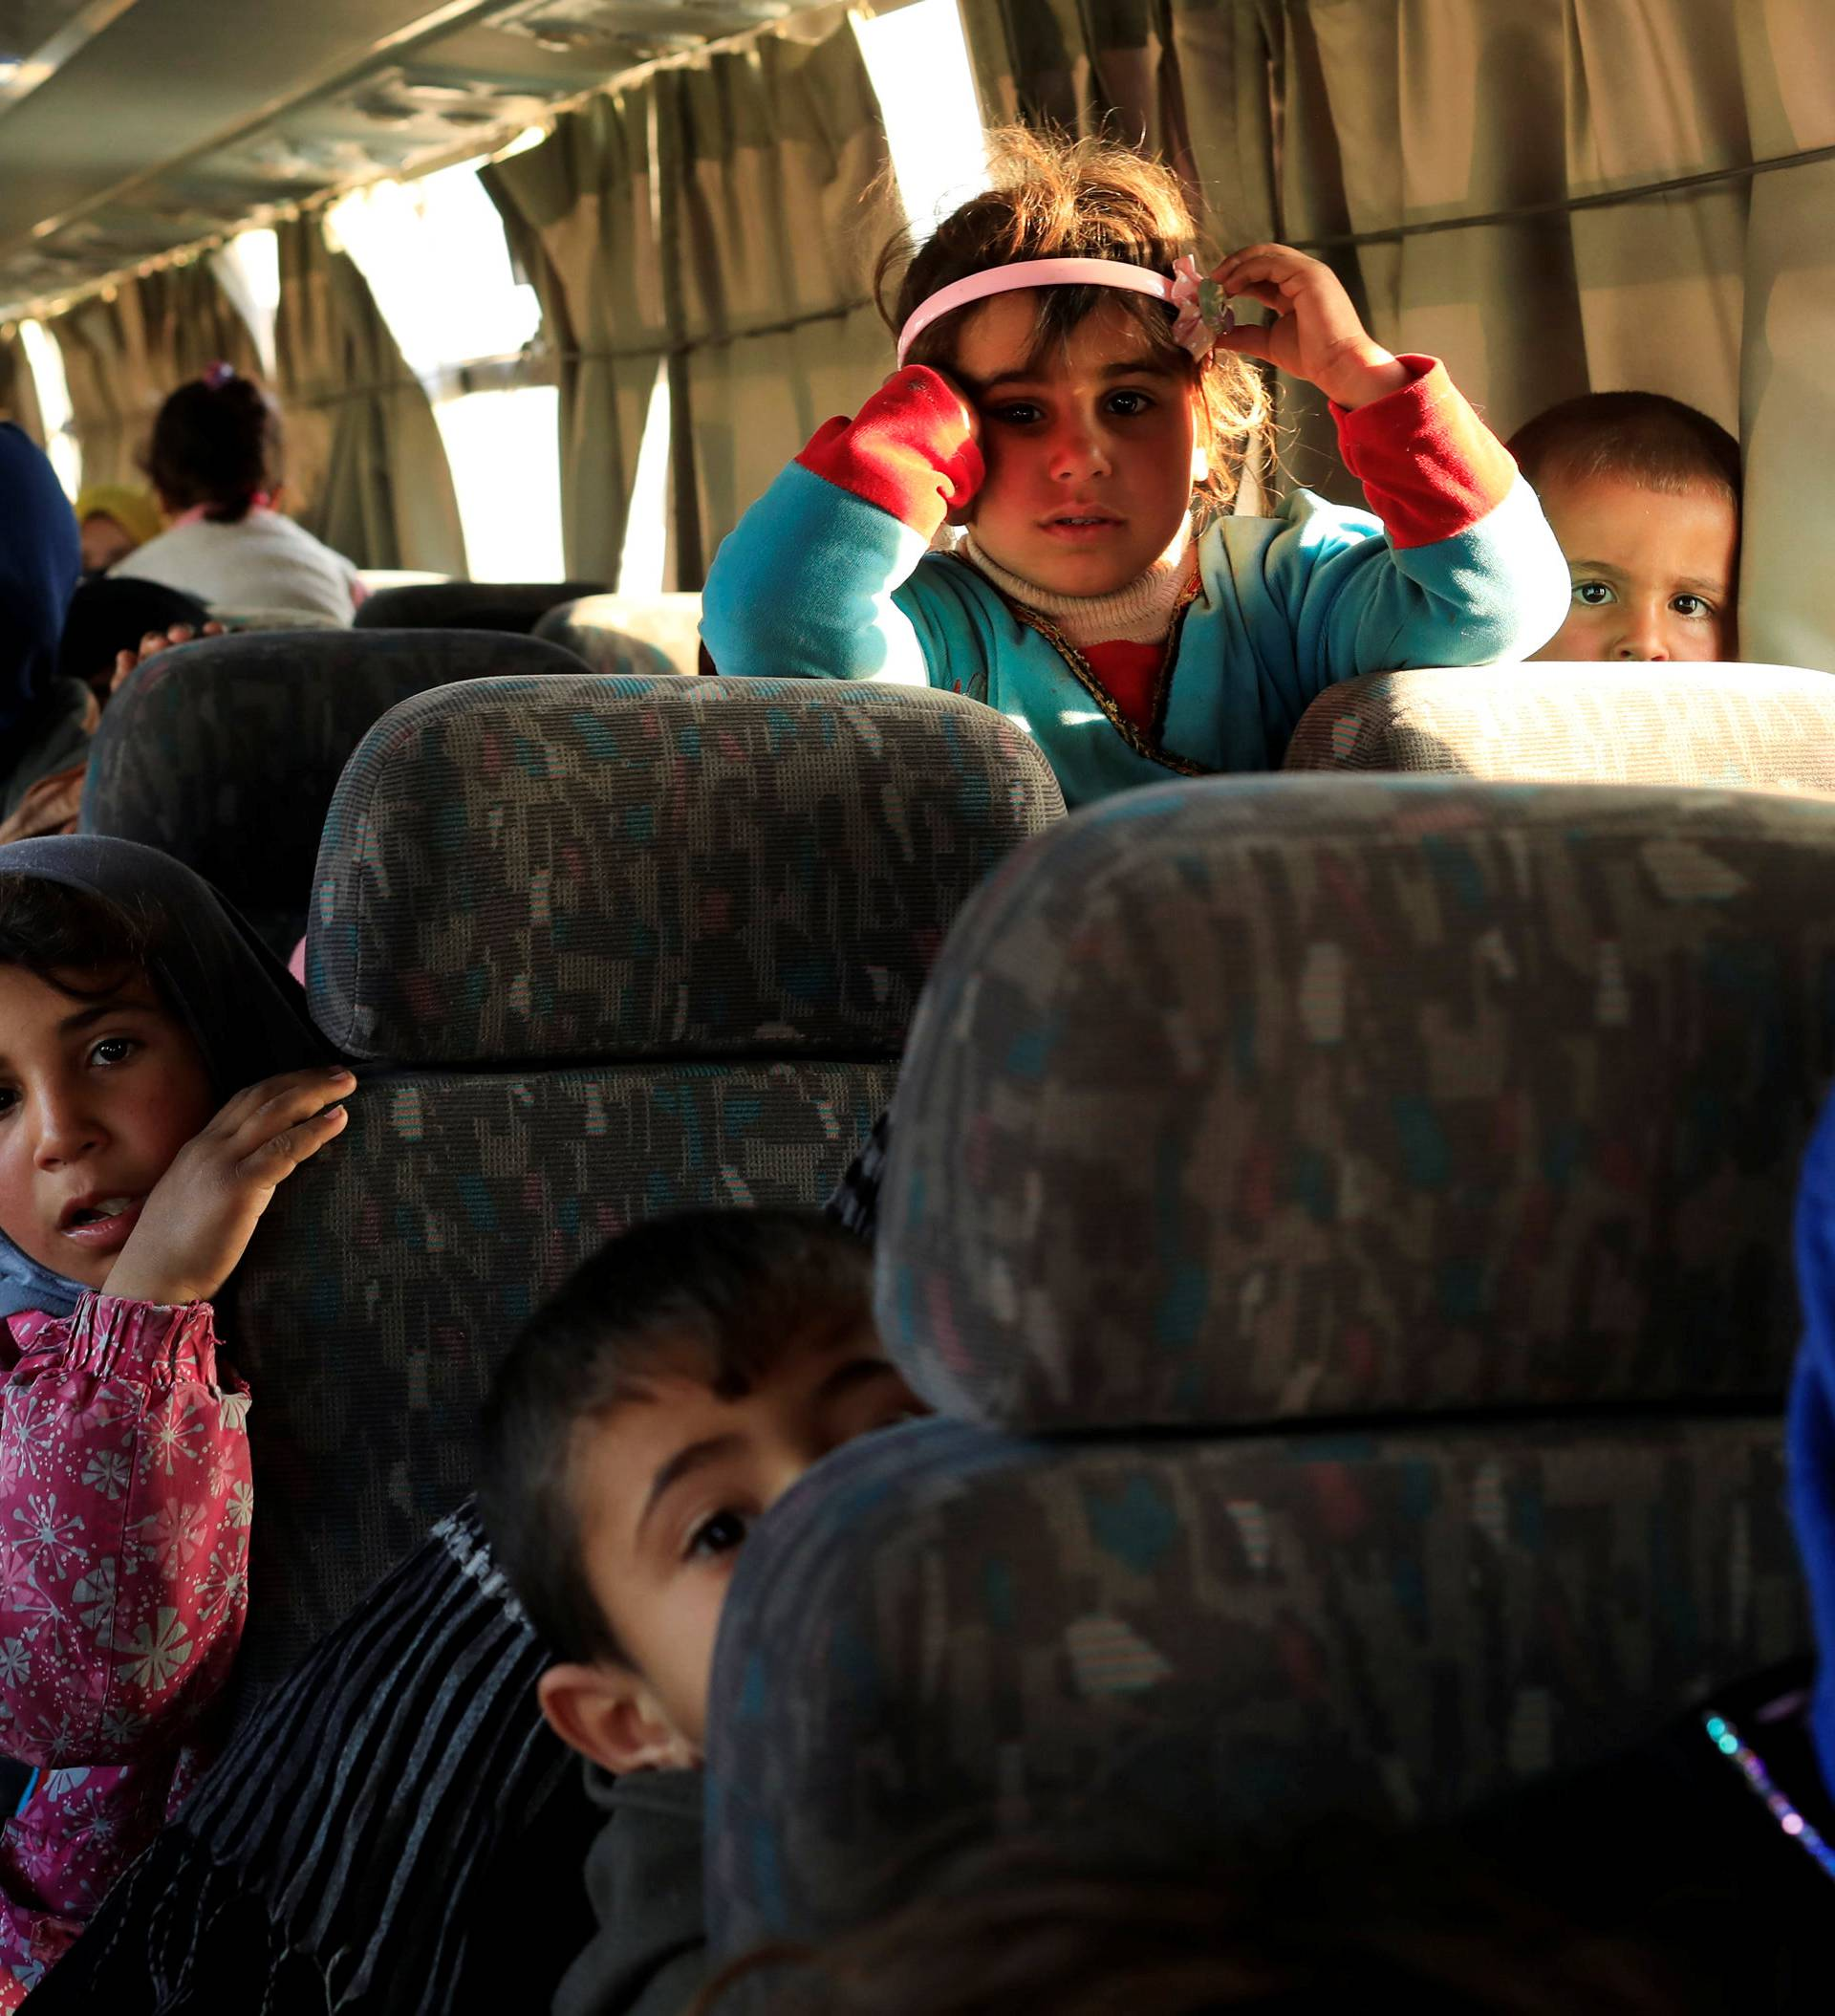 People, who just fled a village controled by Islamic State militants, sit inside a bus before heading to a camp at Hammam Ali, south of Mosul